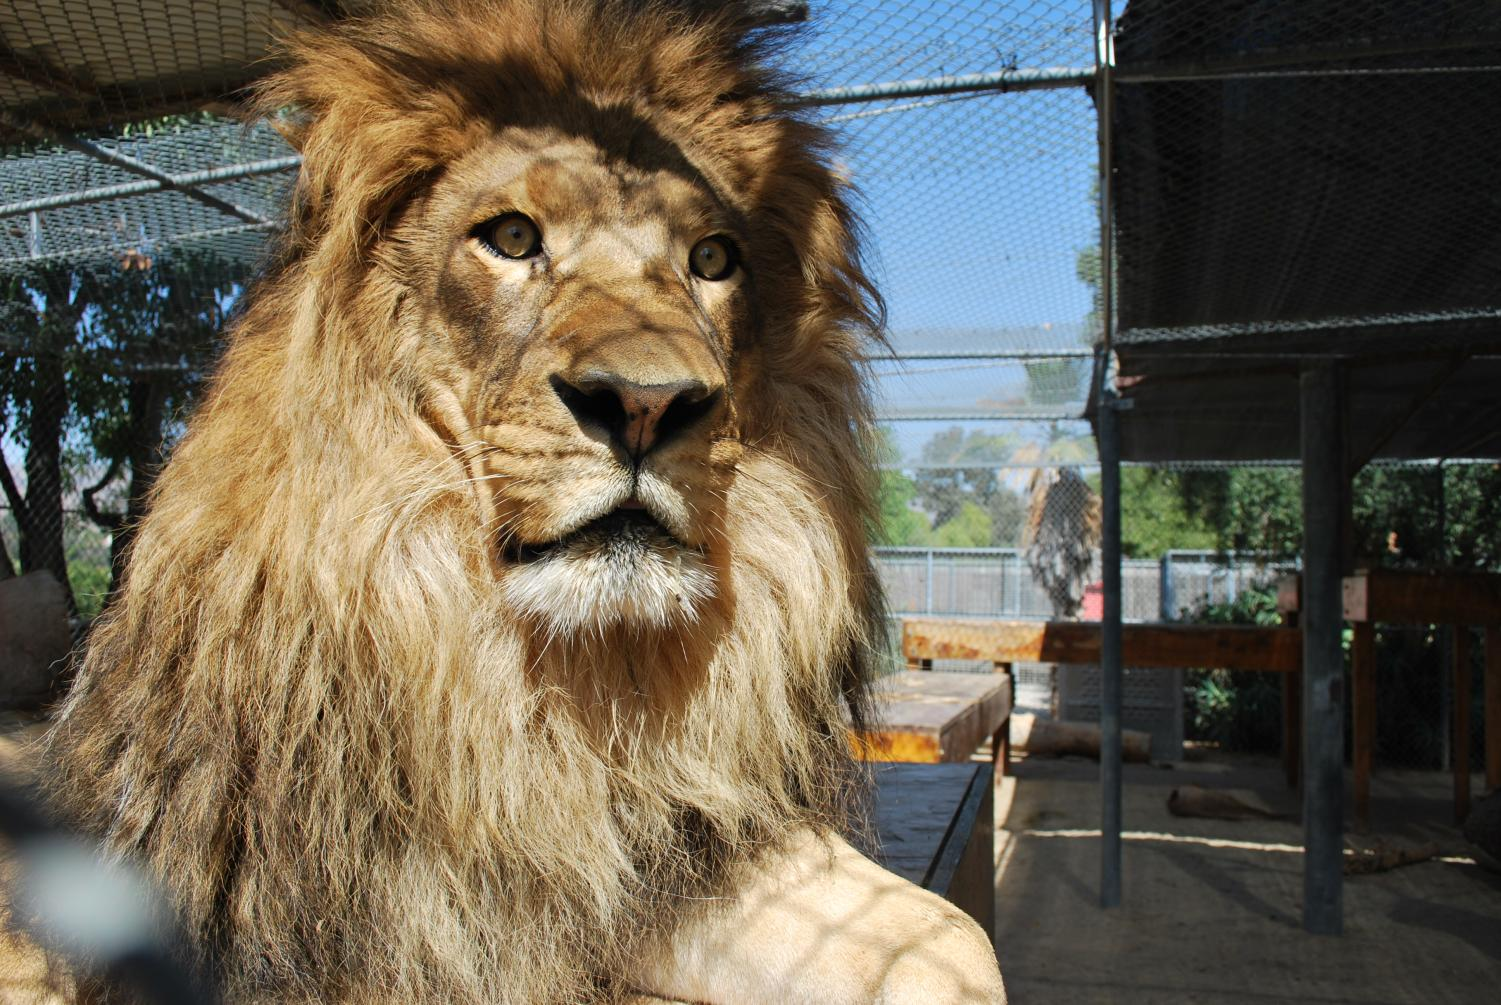 Ira will celebrate his sixth birthday at America's Teaching Zoo on Feb. 1. The public will also get a preview of his newly expanded home called Ira's Kingdom. Photo courtesy of Moorpark Collage Photo Gallery.